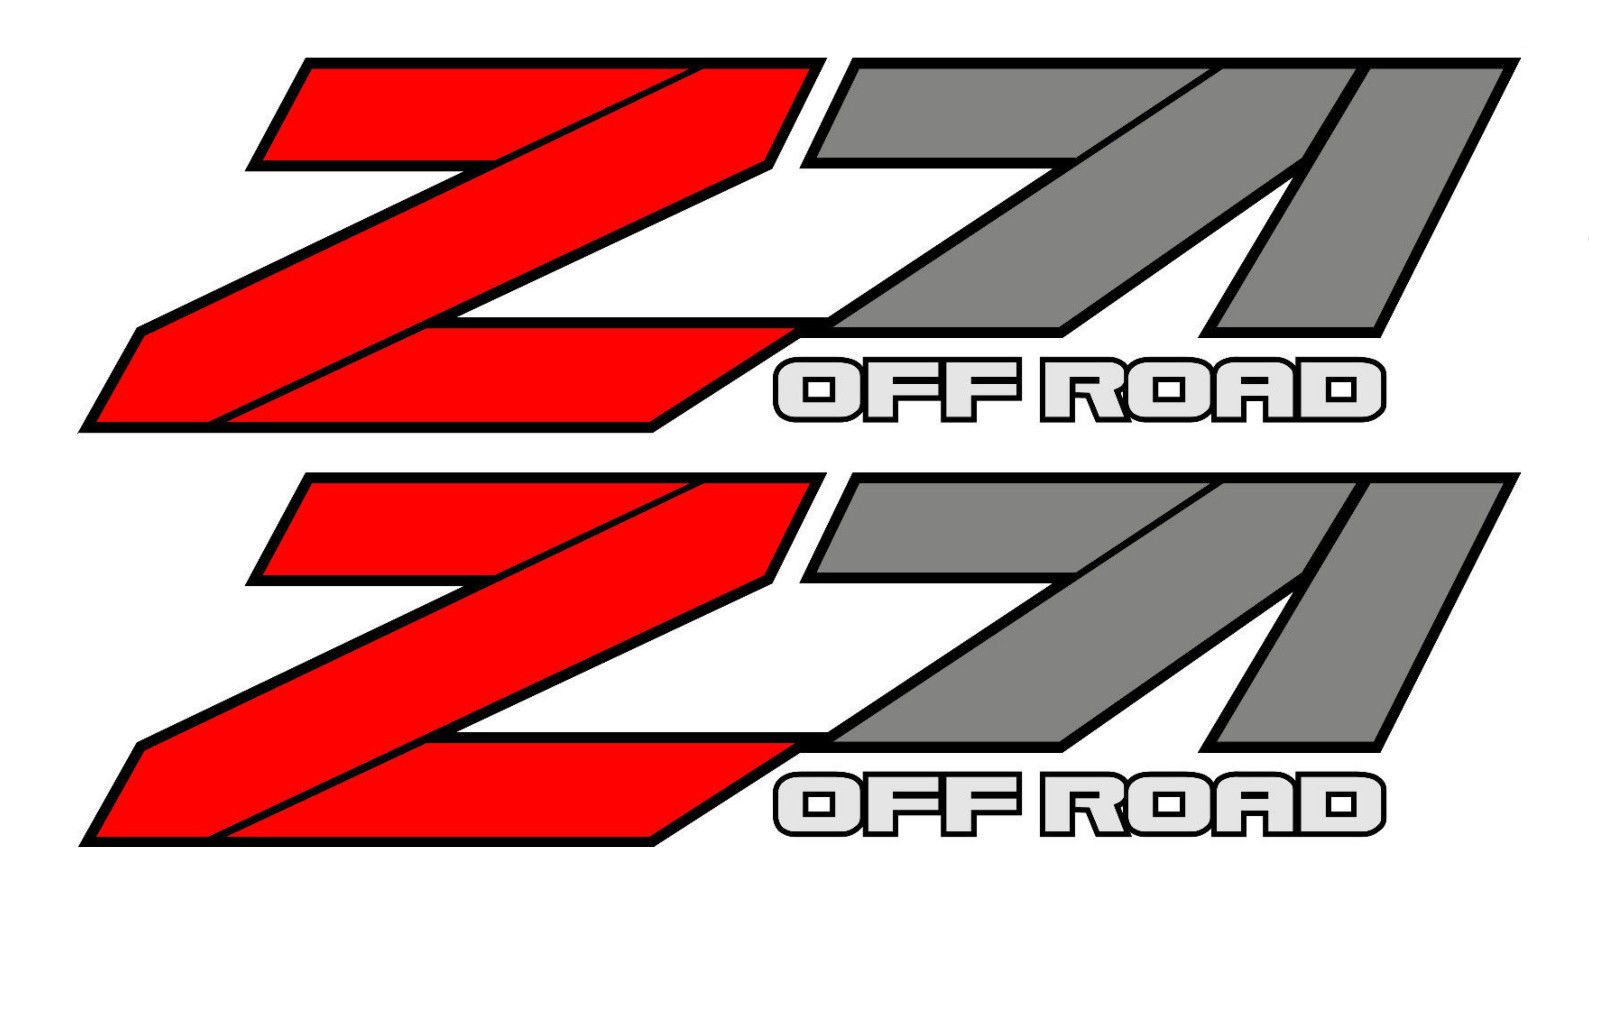 2 OFF ROAD 4x4 Z71 Graphic Decal Stickers fits Chevy Silverado GMC Sierra Red